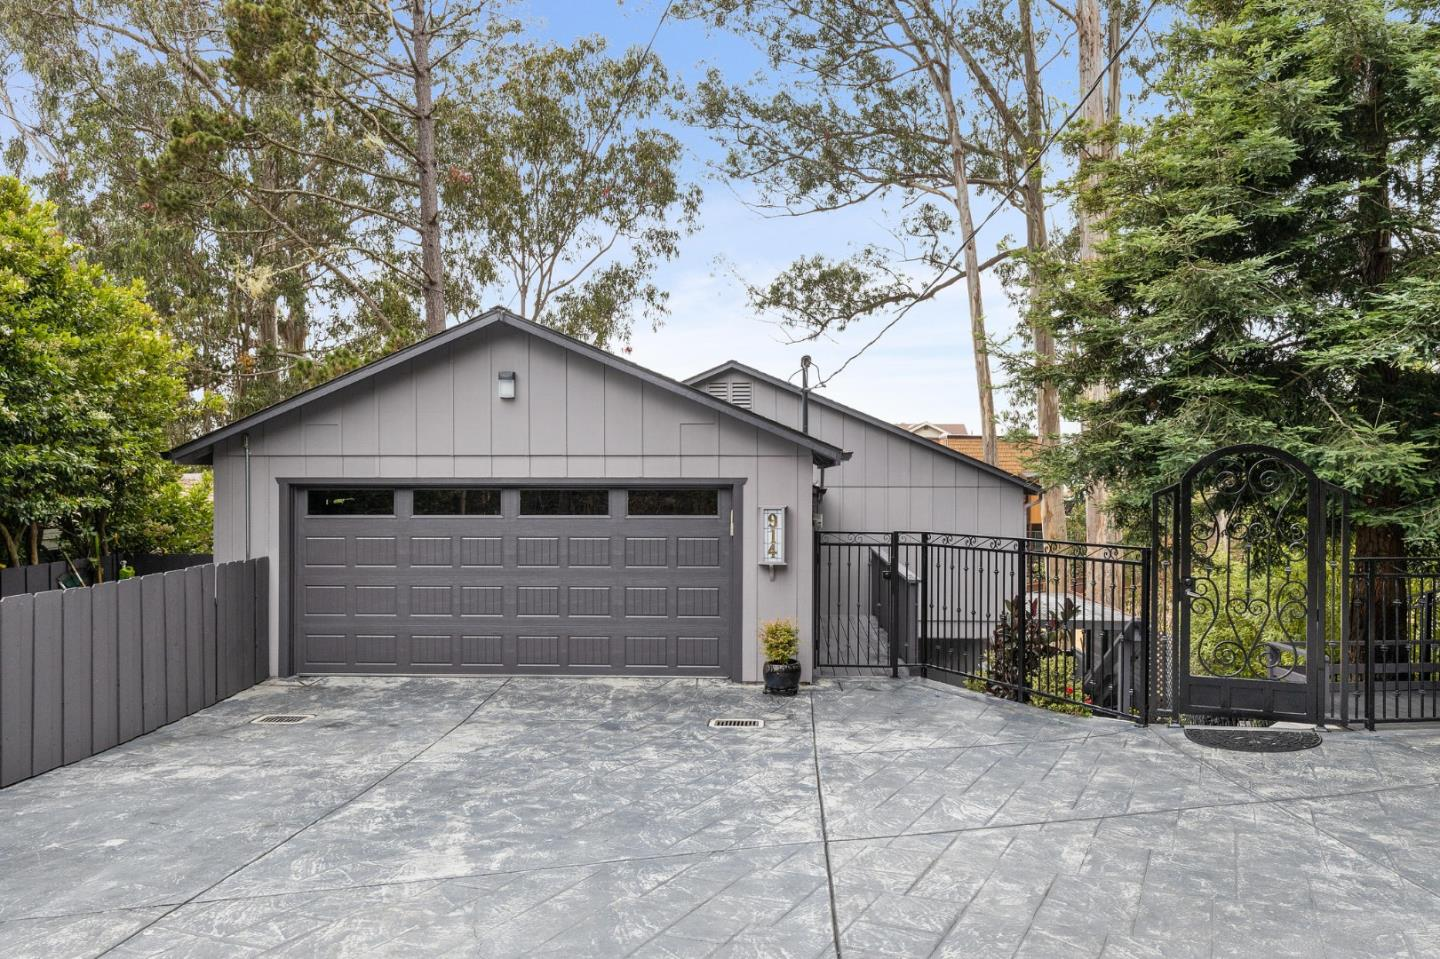 Wow! Fully remodeled in the last couple of years, this almost 3,000 sq. ft. home with a bonus unit in El Granada's sunbelt checks almost every box. Storybook entryway opens to private garden courtyard with your very own redwood tree! Generous main floor contains warm and open living areas that connect to decks and outdoor spaces. Granite counter tops, high end appliances, spacious pantry, and tons of storage on this main floor; Ascend to the upper floor where you'll find 4 full bedrooms and 2 beautiful bathrooms with toto in wall toilets, well equipped laundry room, and even a peek-a-boo ocean view! Extremely cool permitted bonus space on the lower level. At almost 650 sq. ft., this flexible space contains full bathroom, kitchenette, large, private patio, and its own driveway and entrance. Easy walk to the Princeton harbor, many local restaurants, the legendary coastal trail and miles pristine beaches.